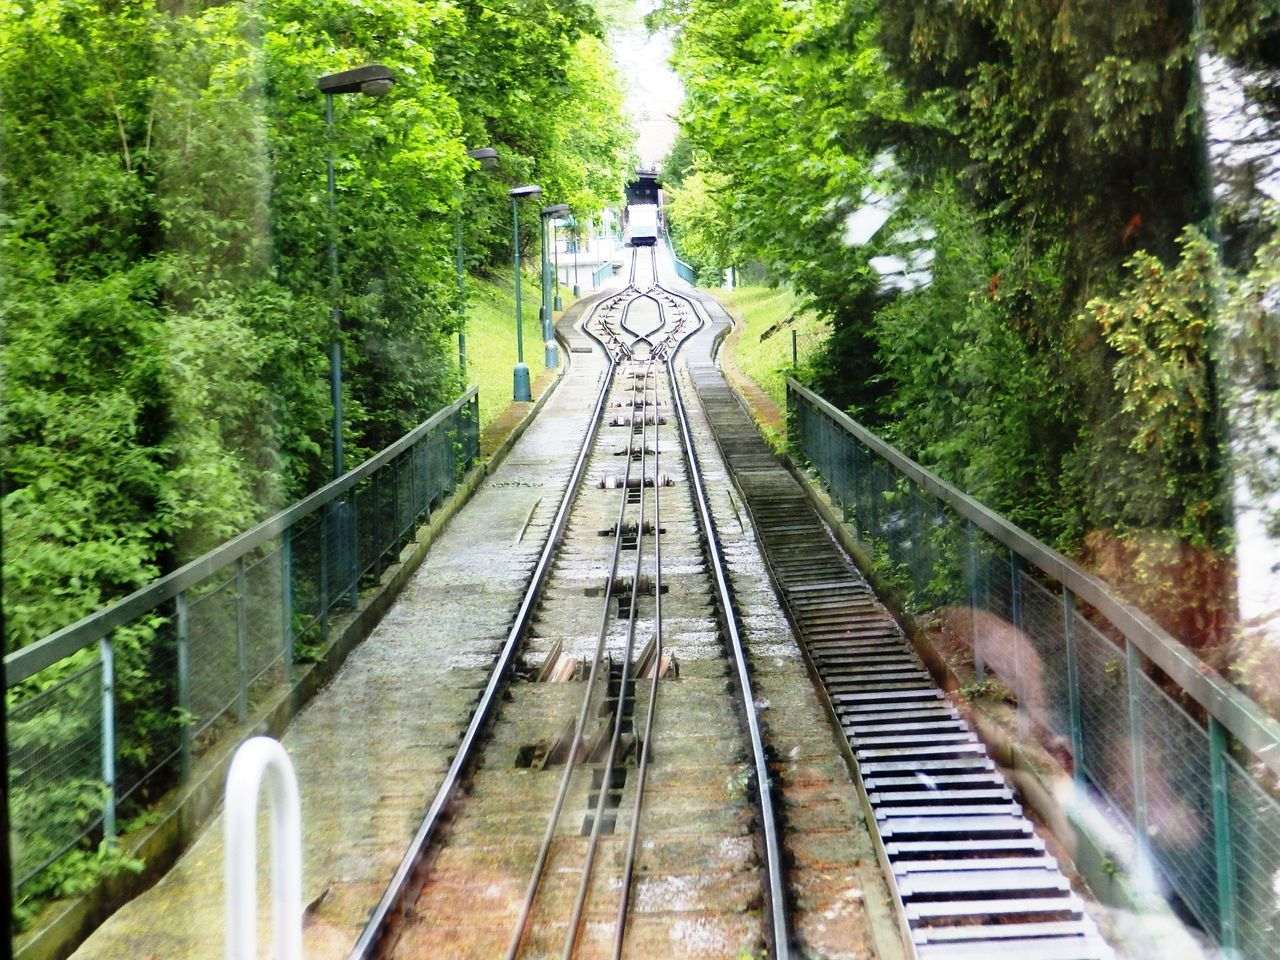 Old Town, Prague Bridge - Man Made Structure Built Structure Cable Car Tracks Connection Day Diminishing Perspective Footbridge Forest Green Color Growth Long Lush Foliage Narrow Nature No People Old Town Outdoors Plant Prag Prague Railing The Way Forward Tranquility Tree Vanishing Point